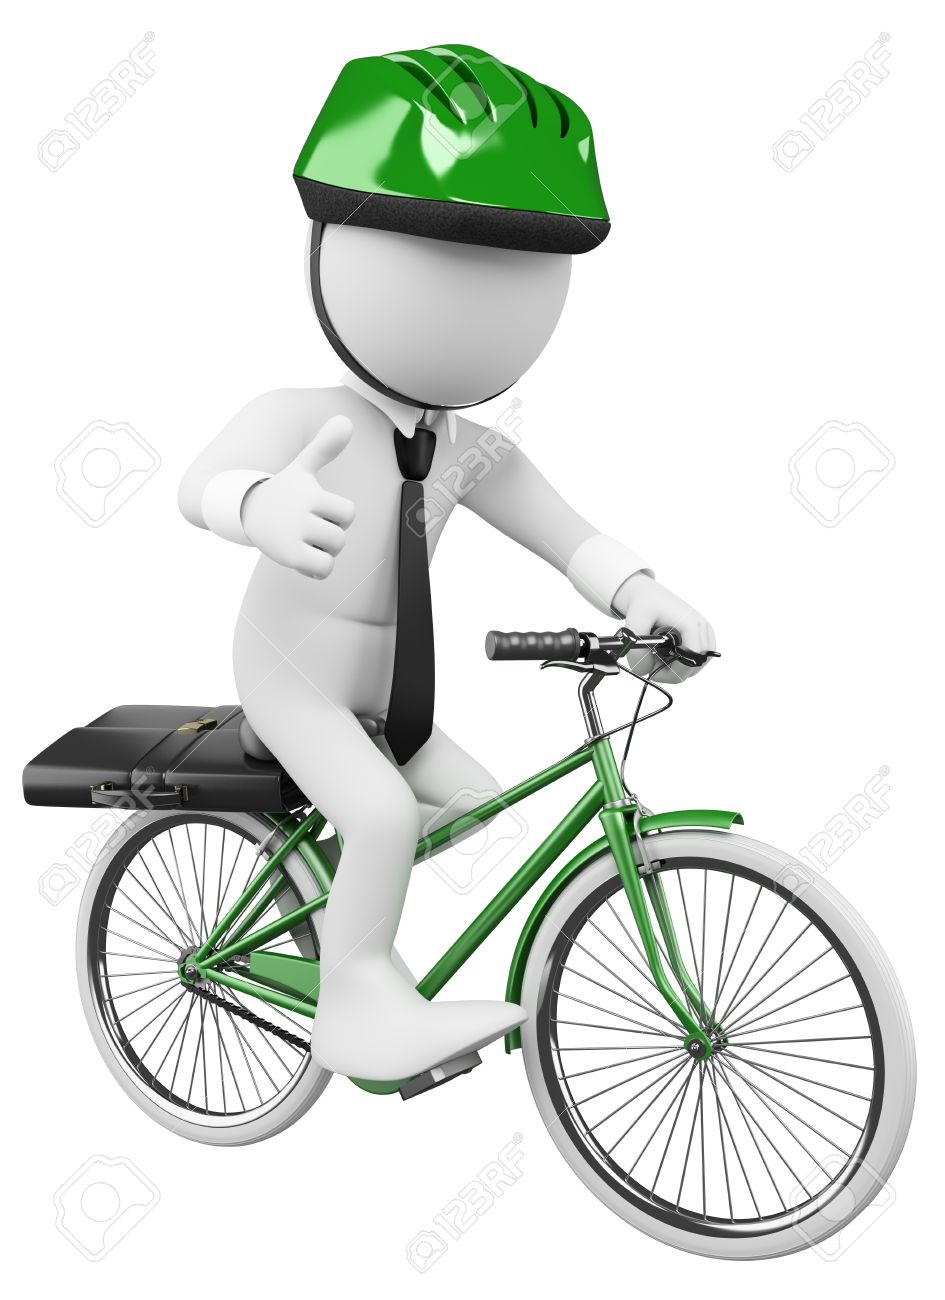 3d white business person going to work in a green bicycle with safety helmet. 3d image. Isolated white background. Stock Photo - 16493087